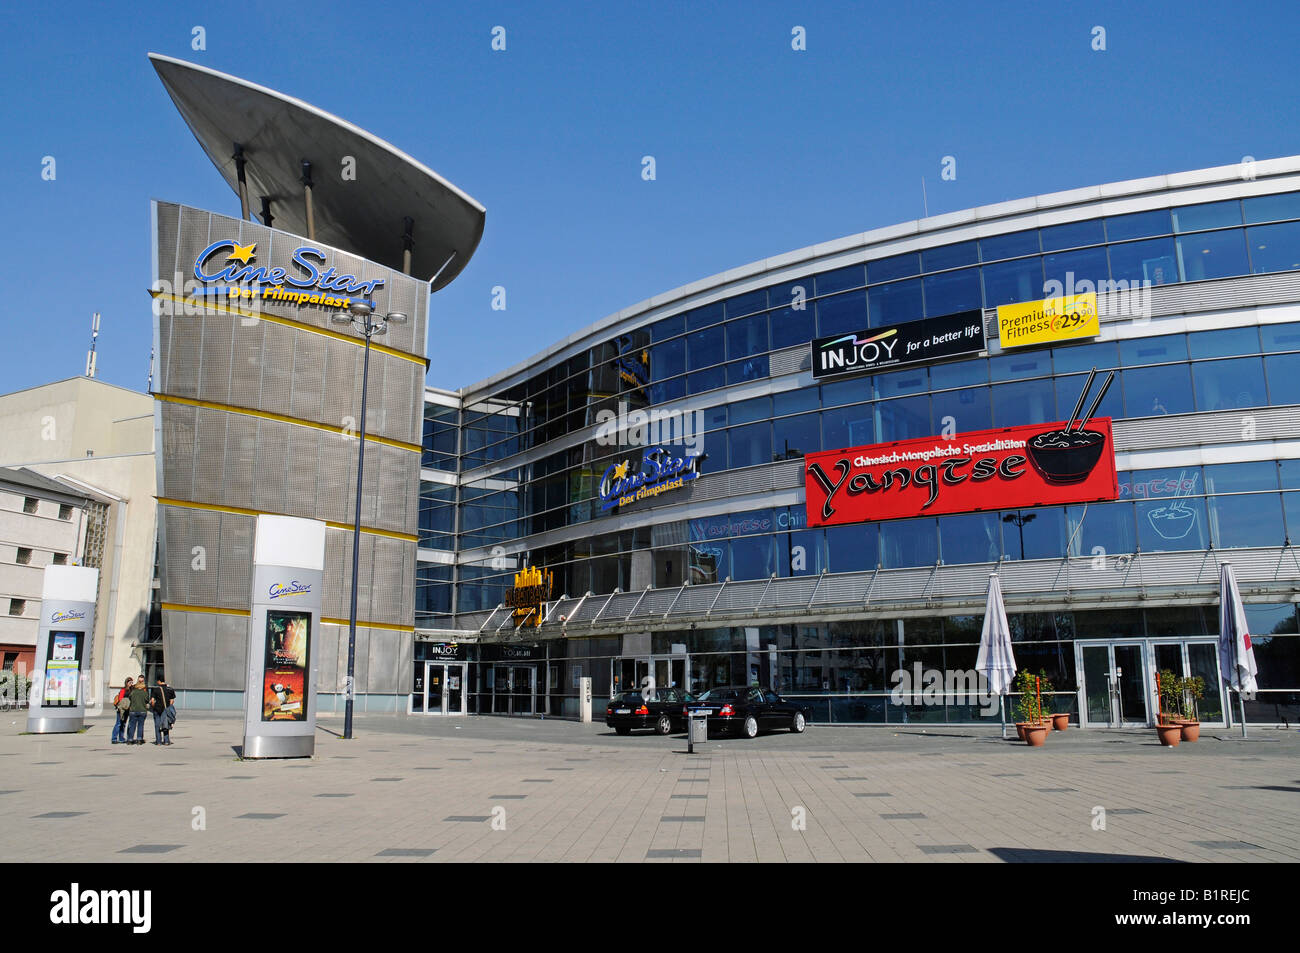 Cine Star multiplex cinema in Dortmund, North Rhine-Westphalia, Germany, Europe - Stock Image